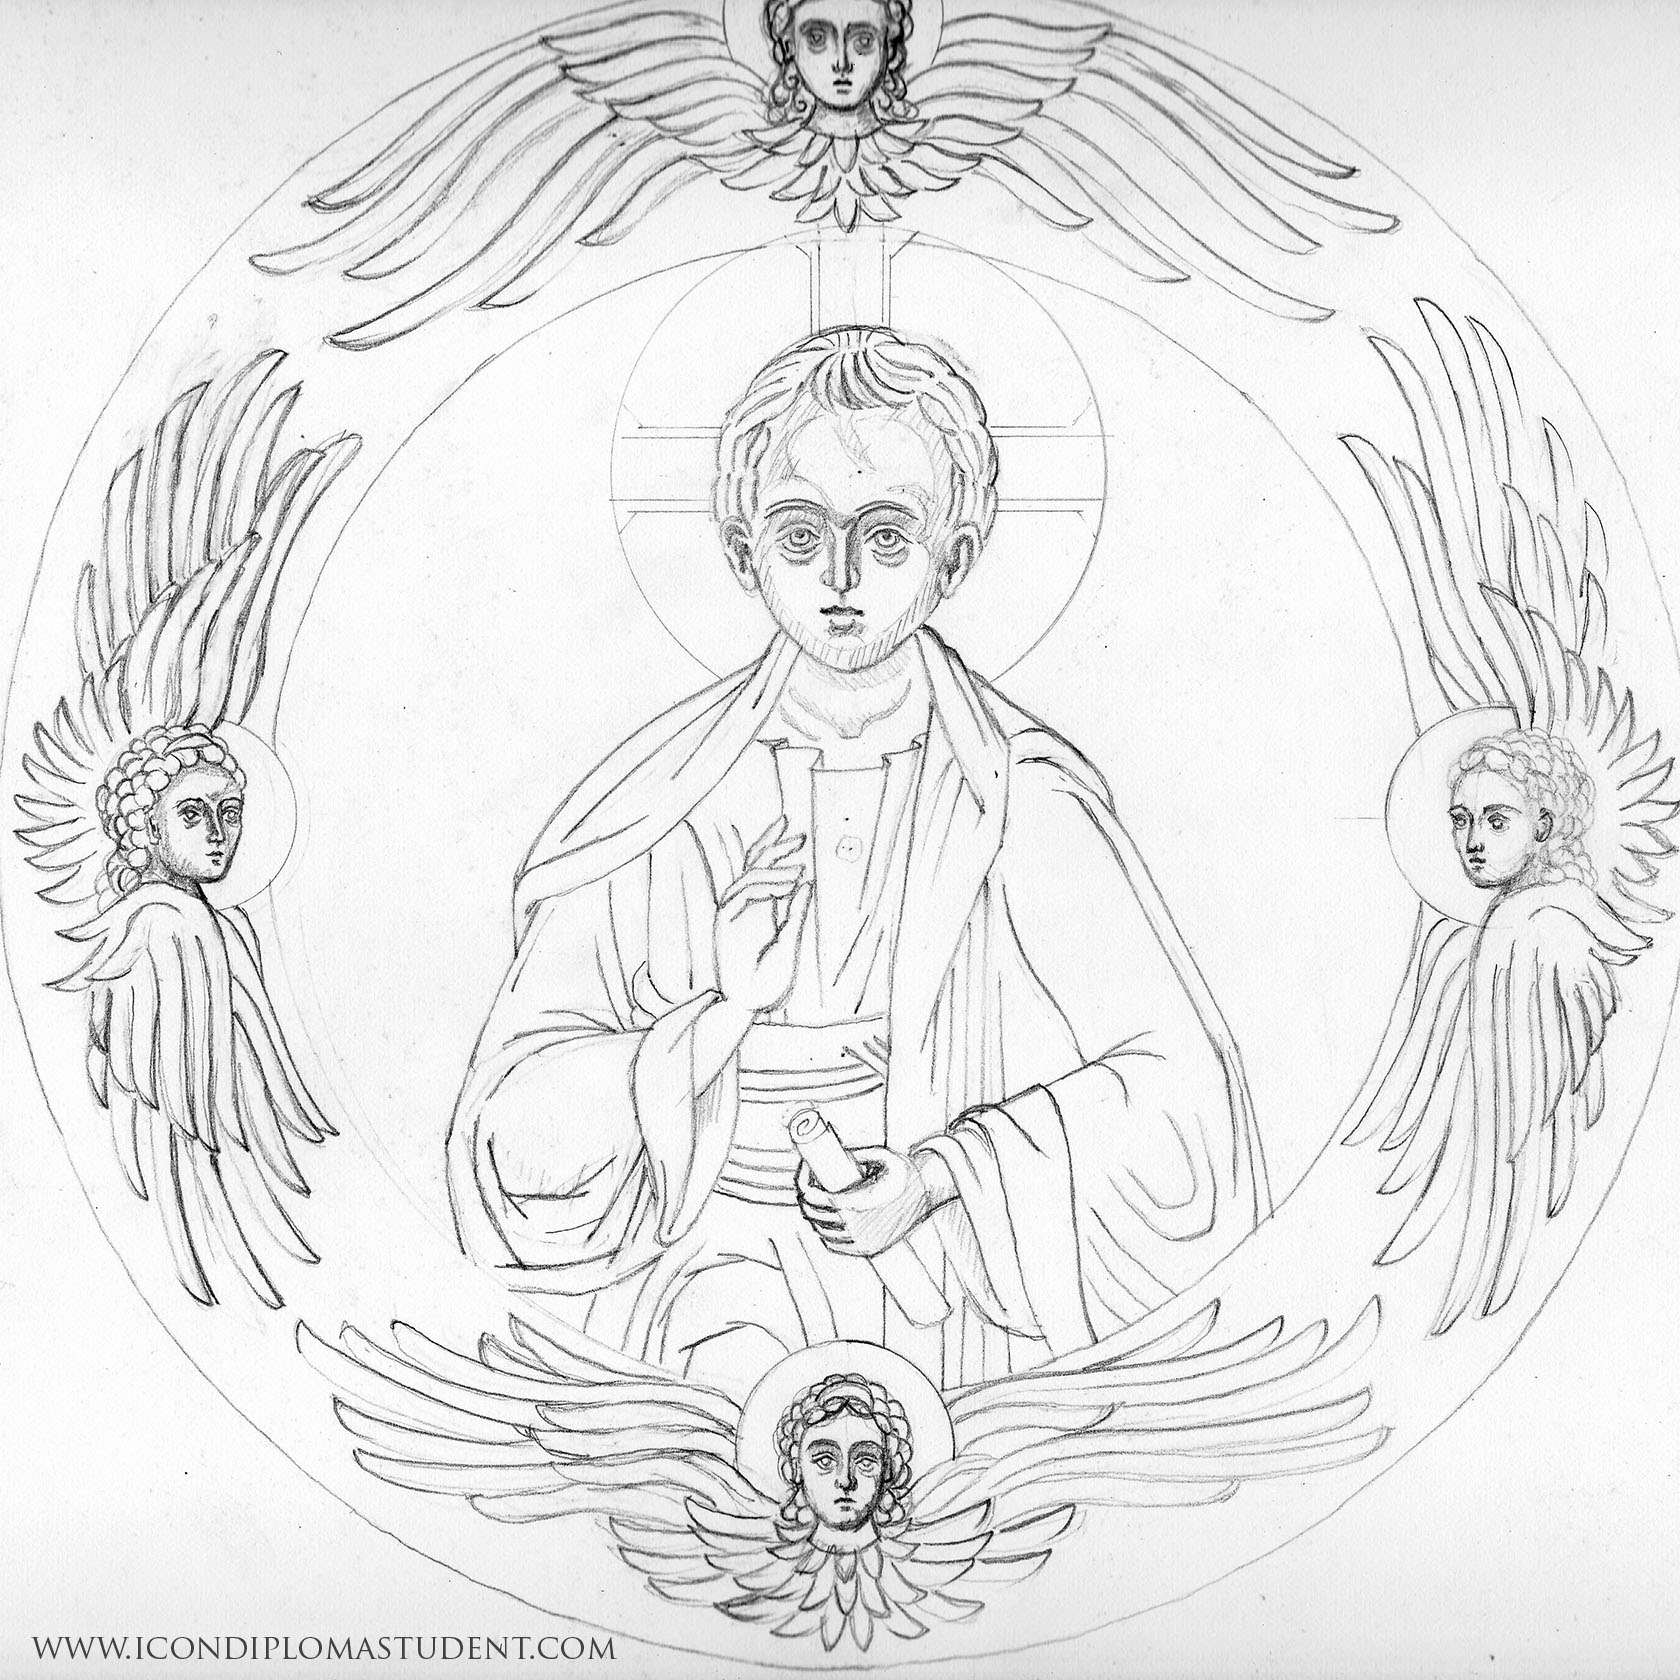 pencil drawing of young christ and seraphim